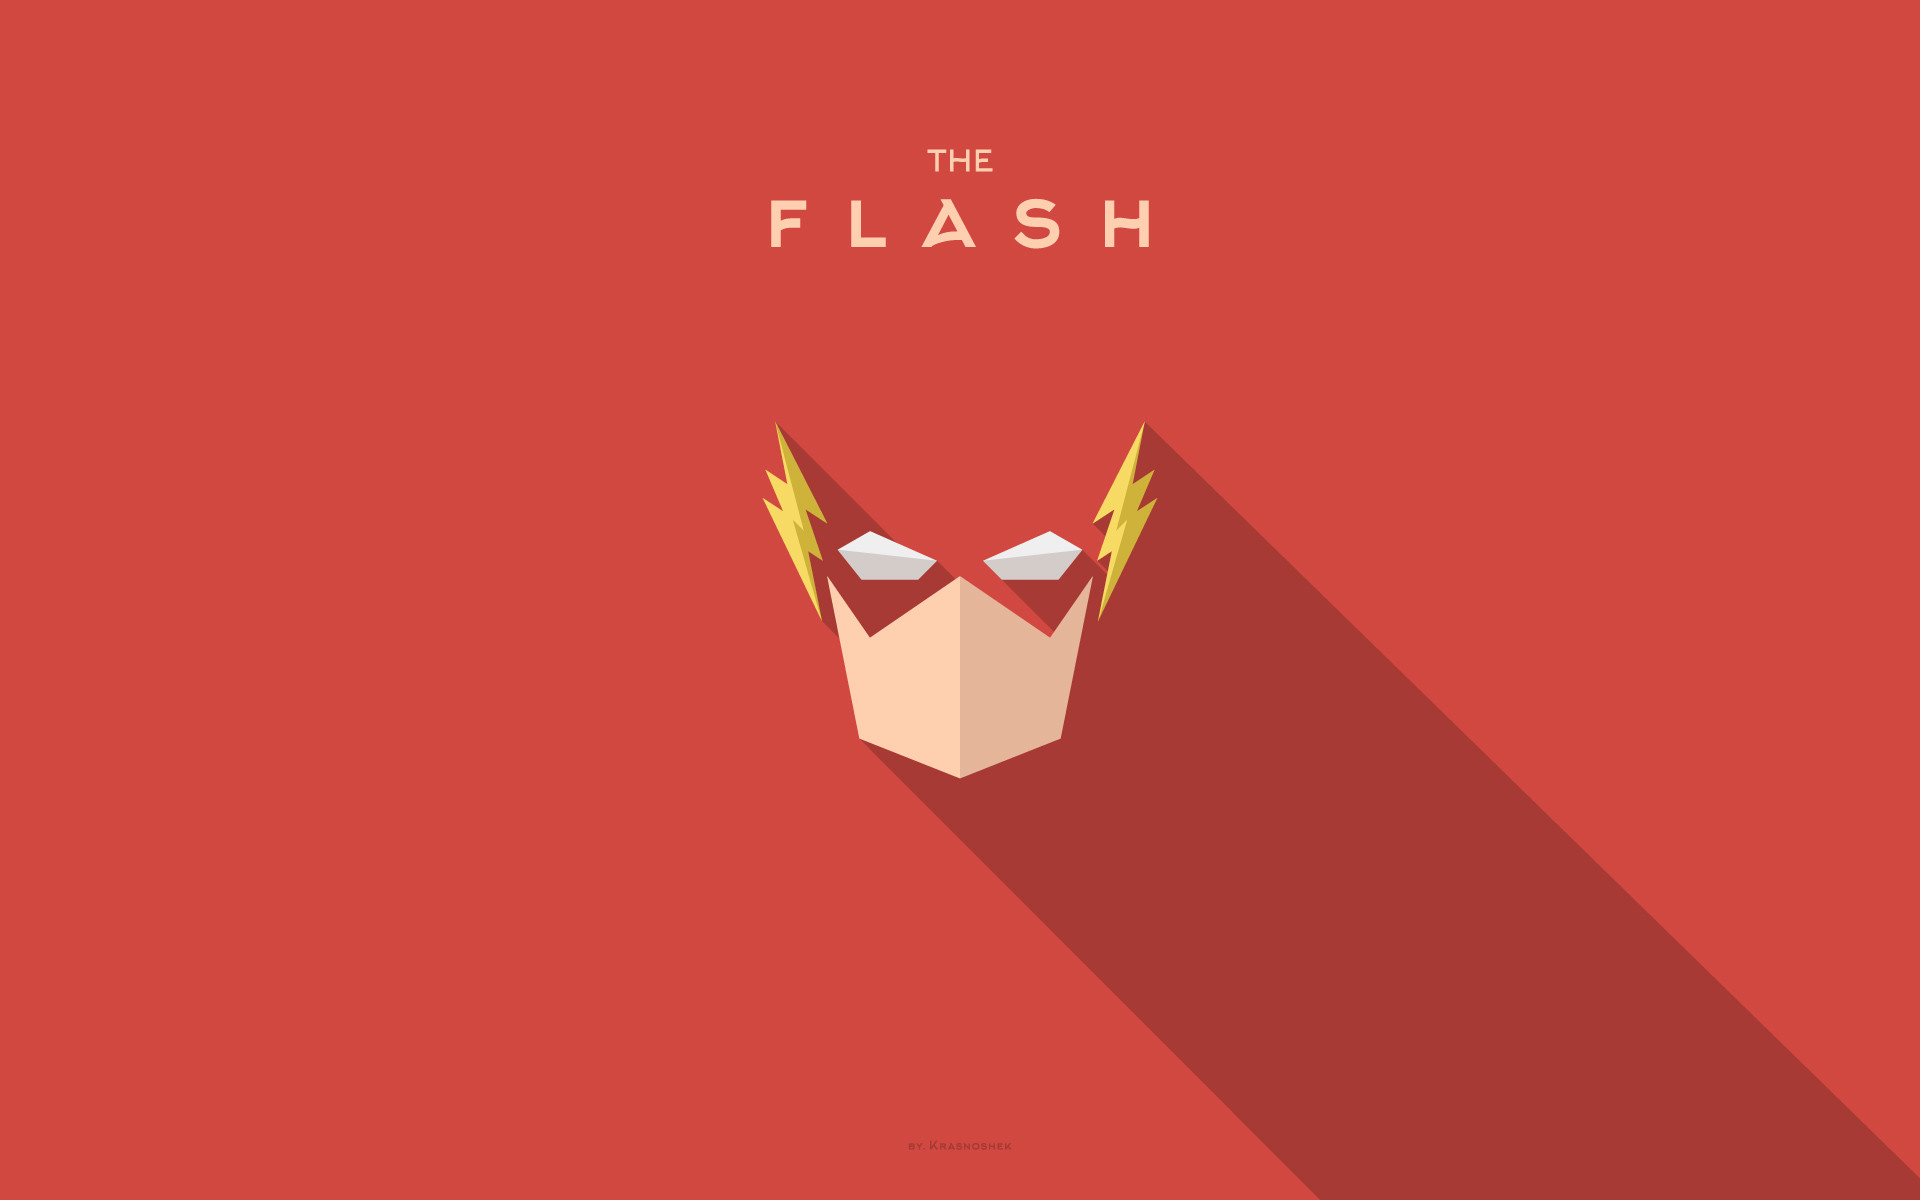 Awesome Flash Wallpaper. Link To More Sizes In Comments.